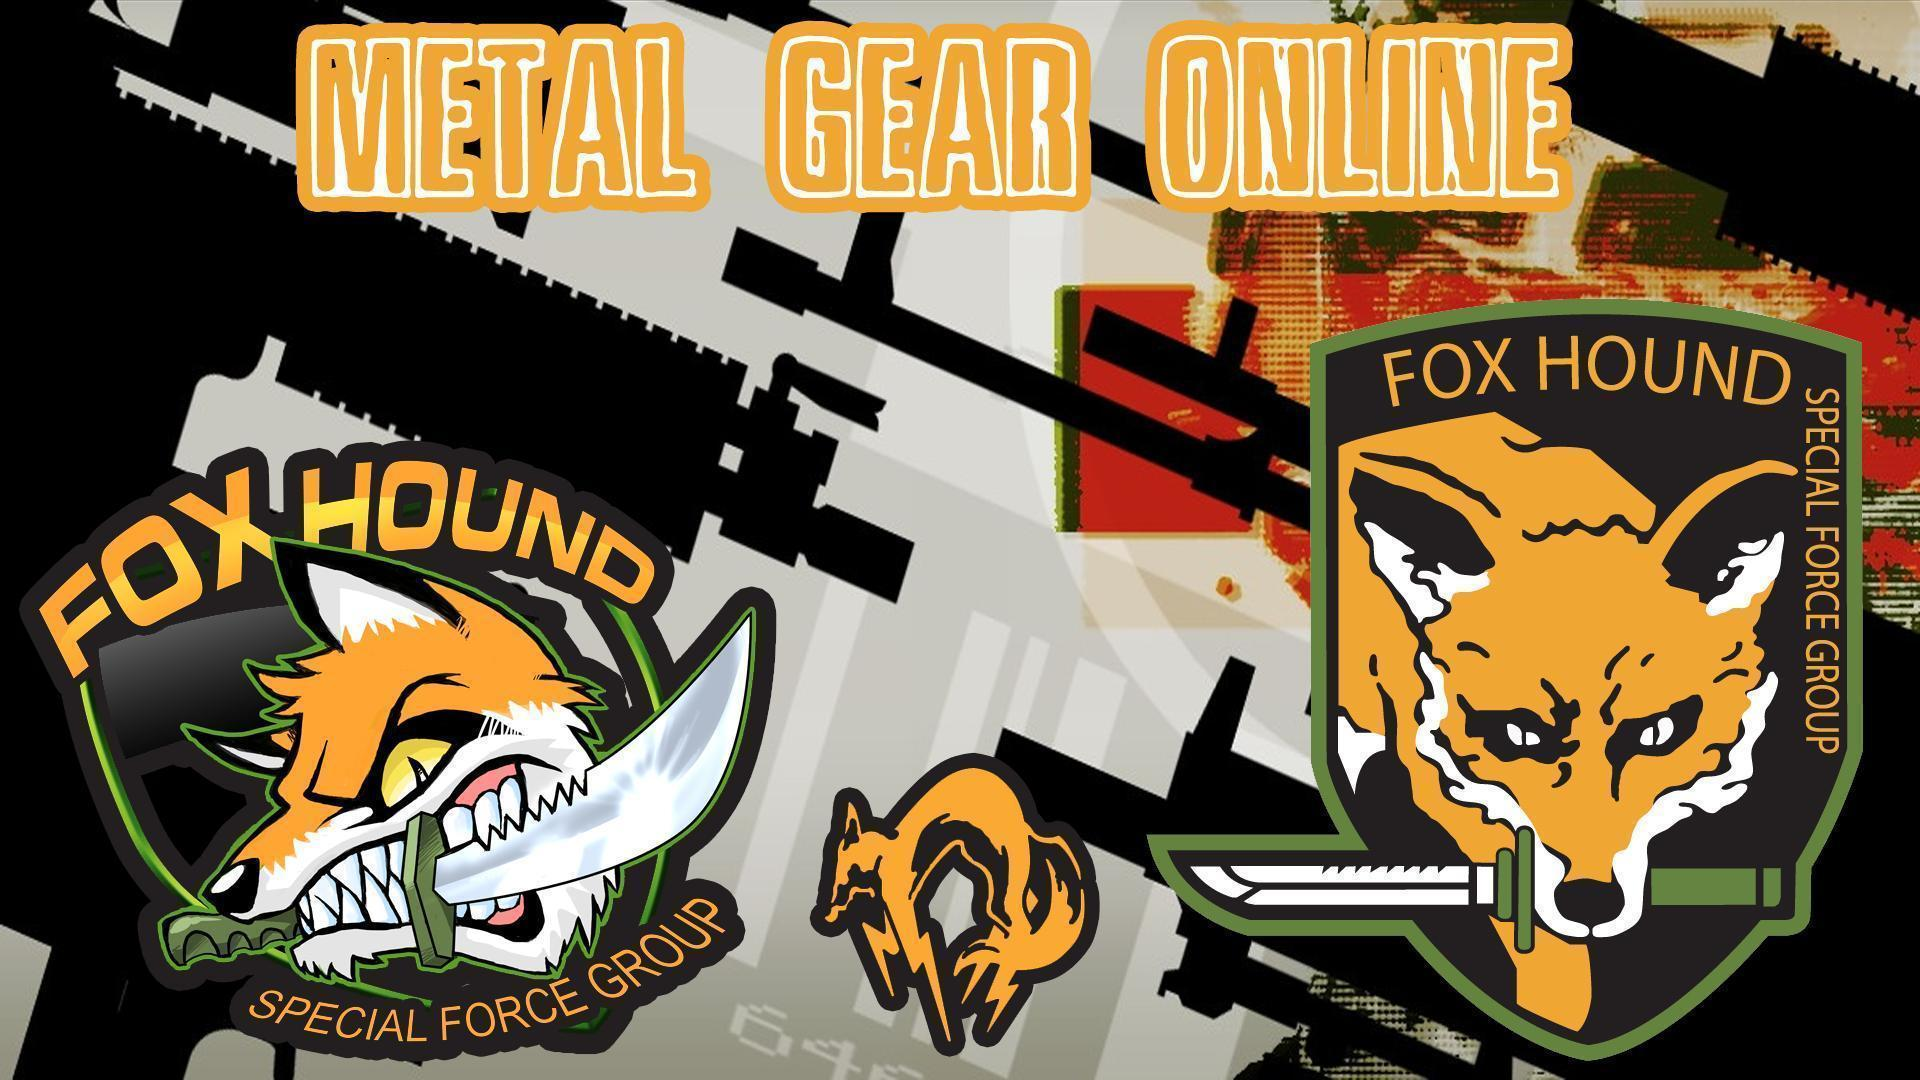 Foxhound Wallpapers 1920 x 1080 by iCEMAN